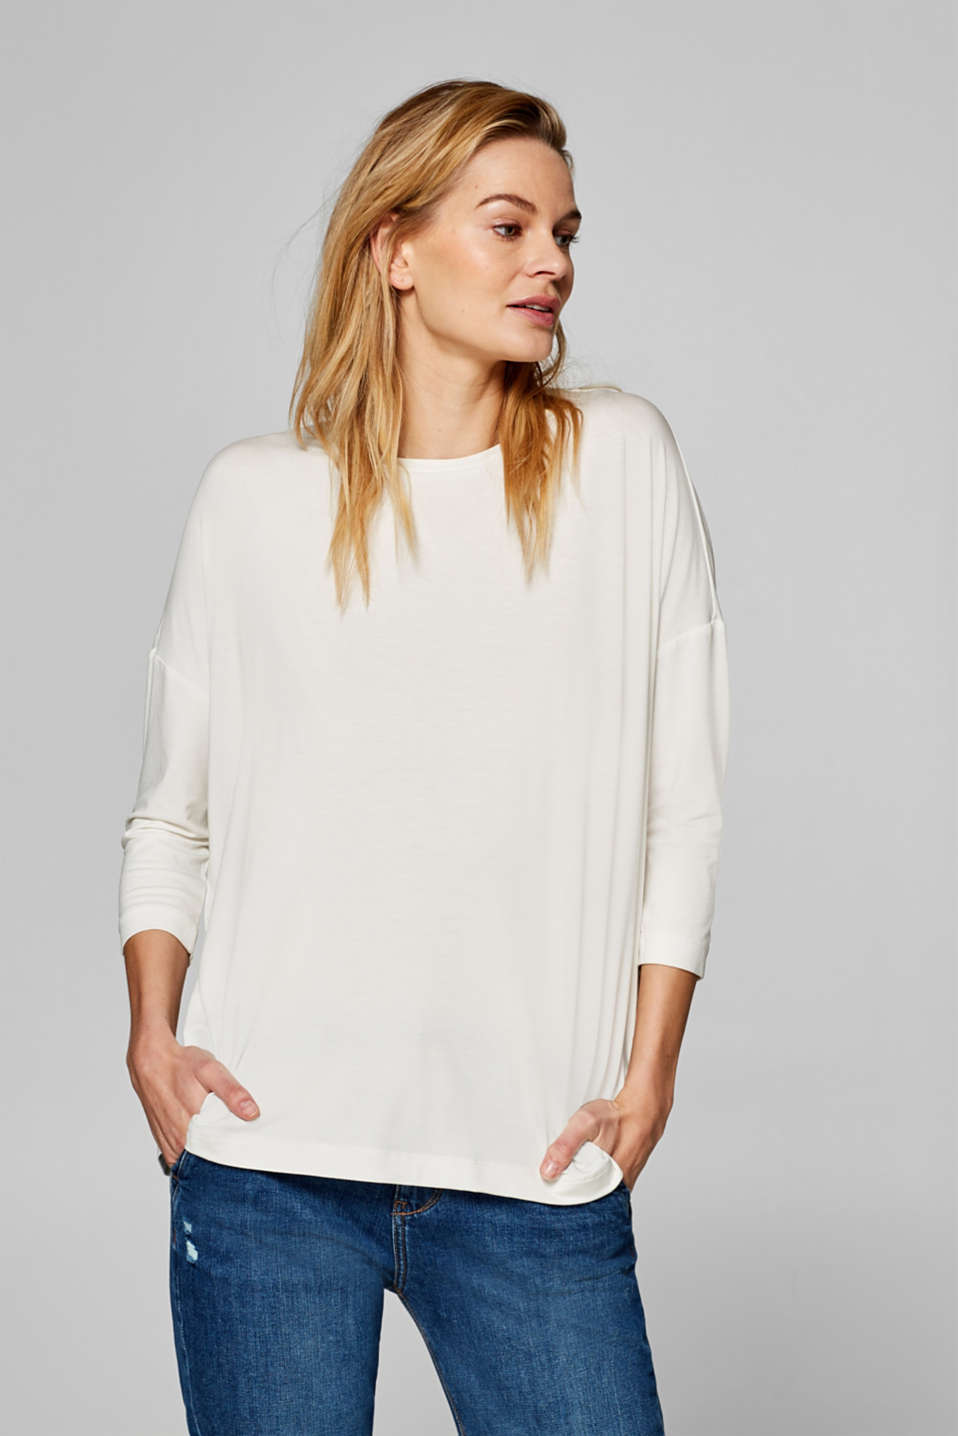 Esprit - Oversized long sleeve top, LENZING™ ECOVERO™